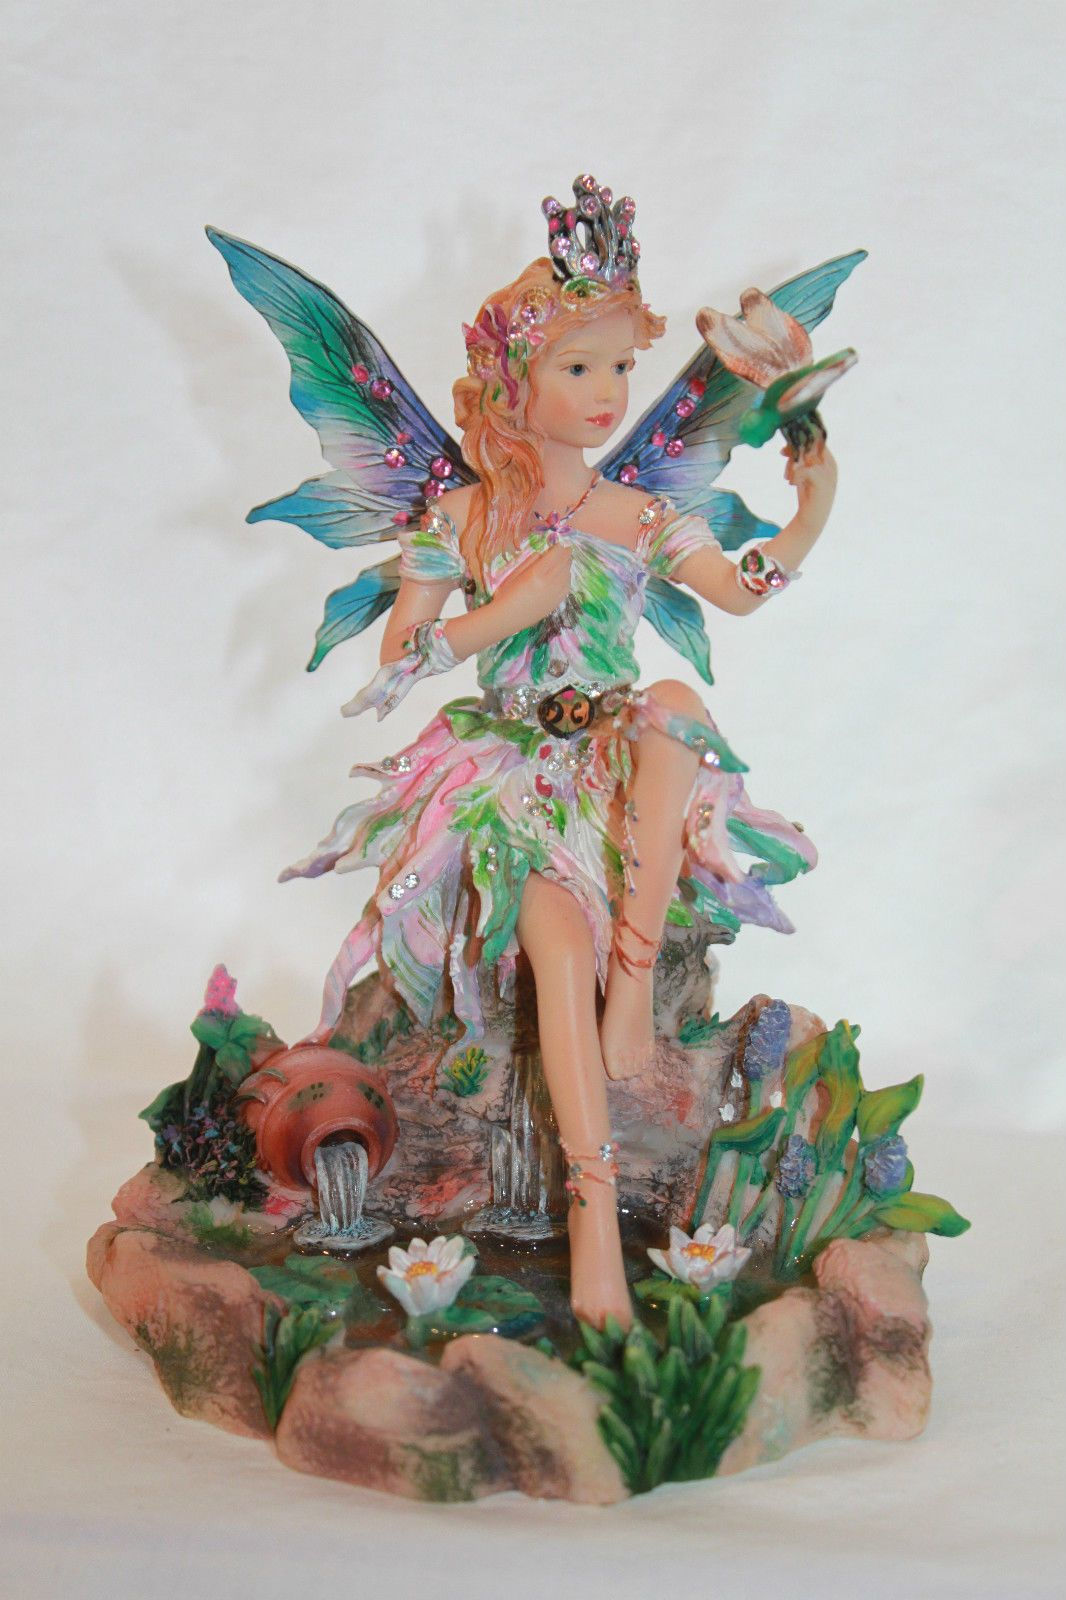 Faerie Statues Faerie Poppets By Christine Haworth By Shimmering Waters Art